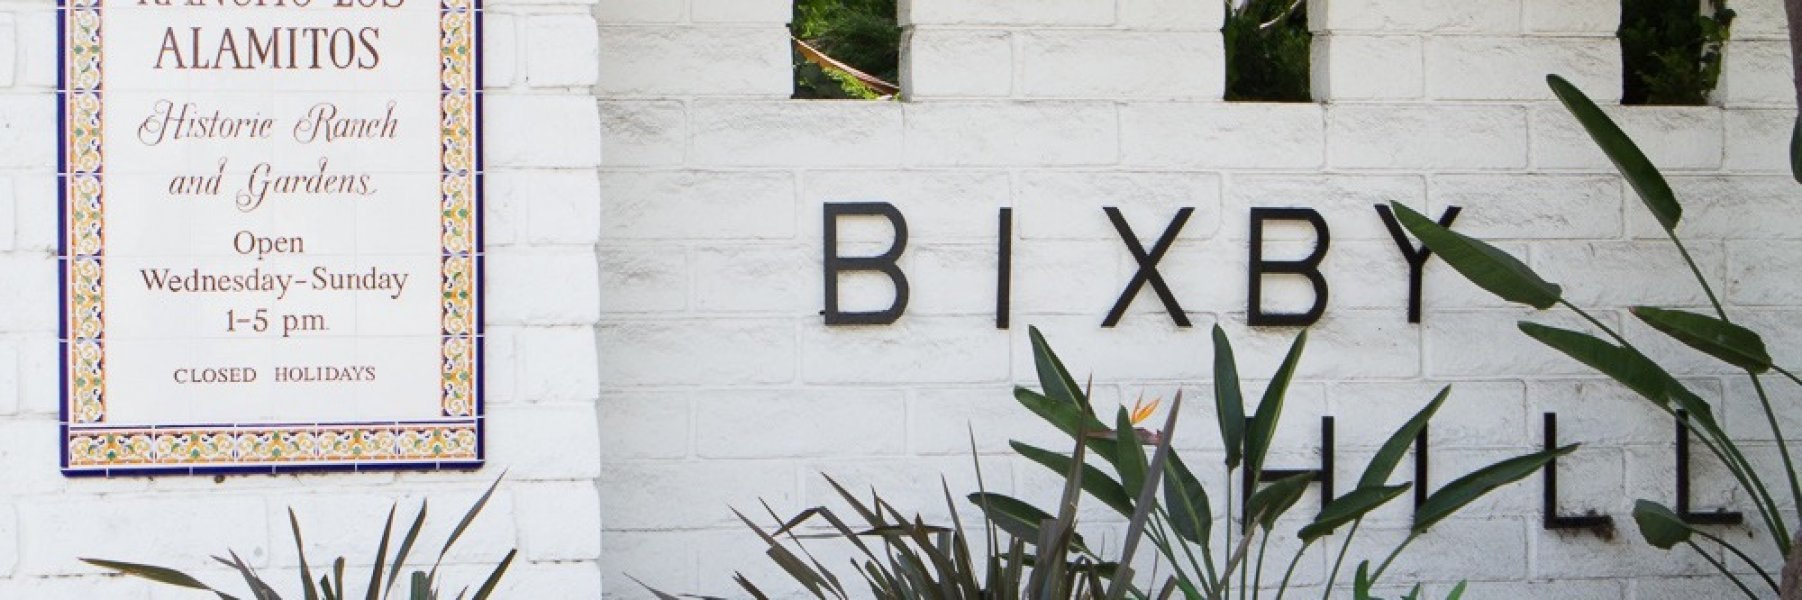 Bixby Hill is a community of homes in Long Beach California